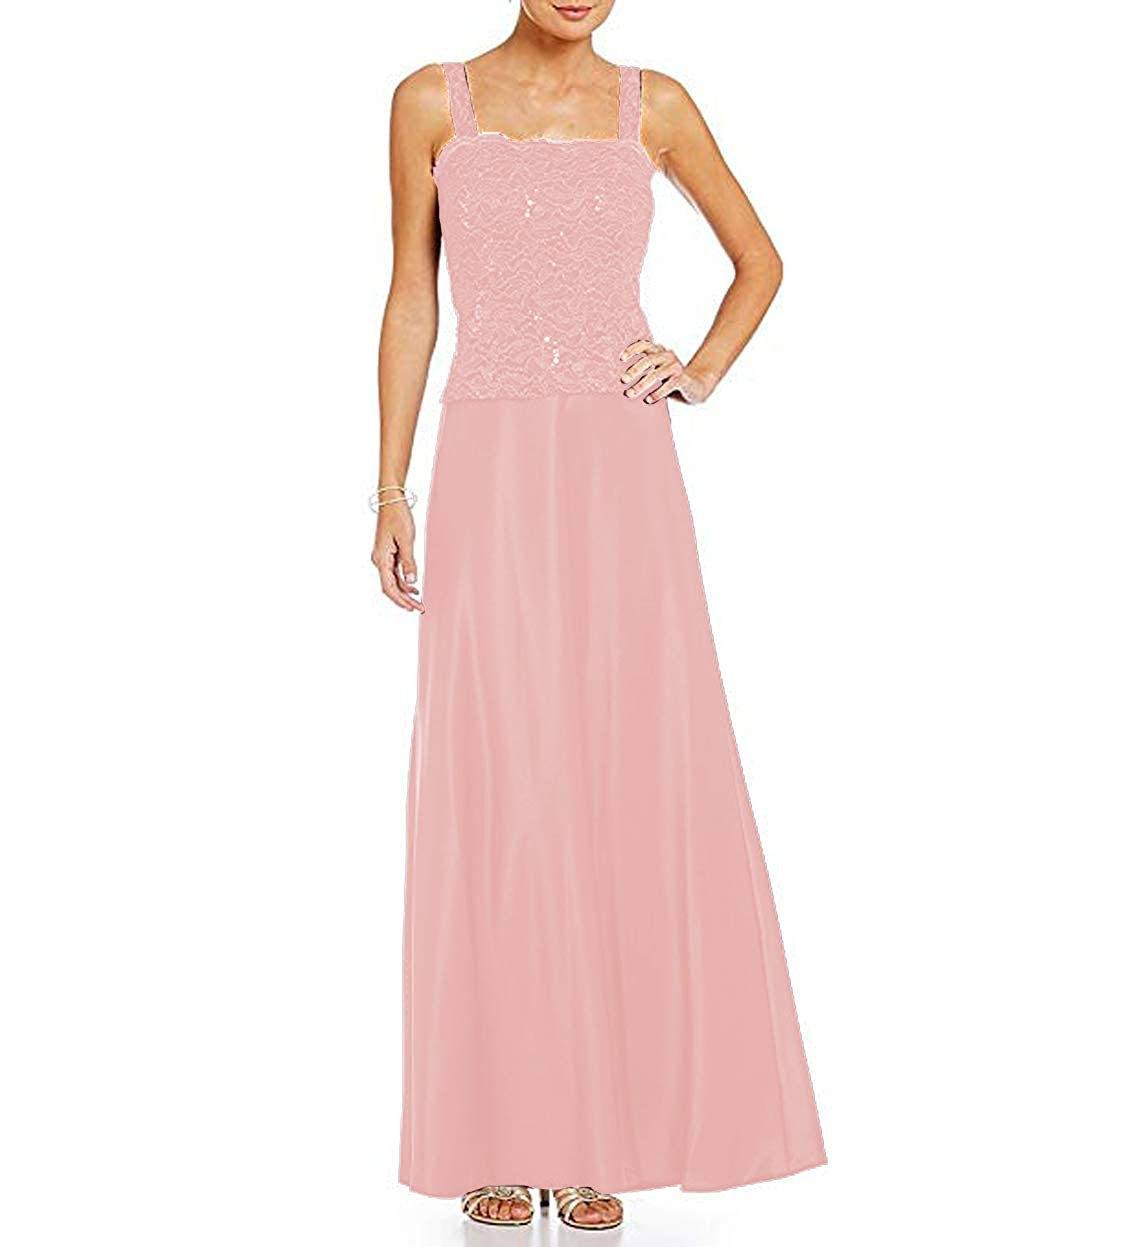 Pink Women's Satin Ankle Length Mother of The Bride Dresses with Lace Jacket Plus Size 2 Piece